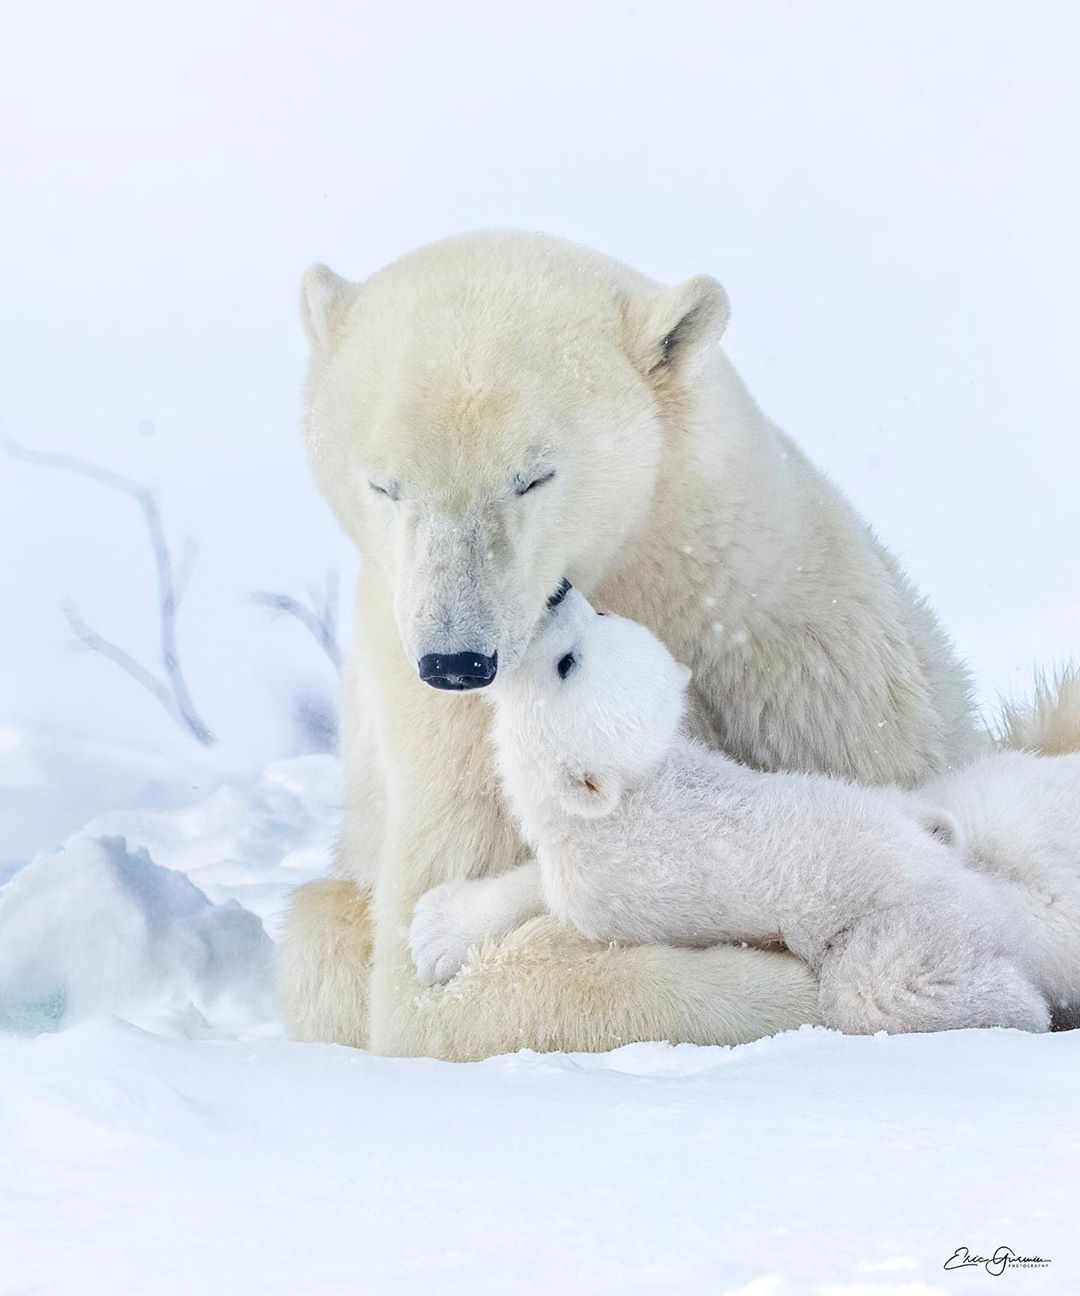 """Eric Gurwin on Instagram: """"Actions speak louder than words...a moment of true love of cub for its mother captured. #polarbears #kiss #bearcub #earthcapture…"""""""